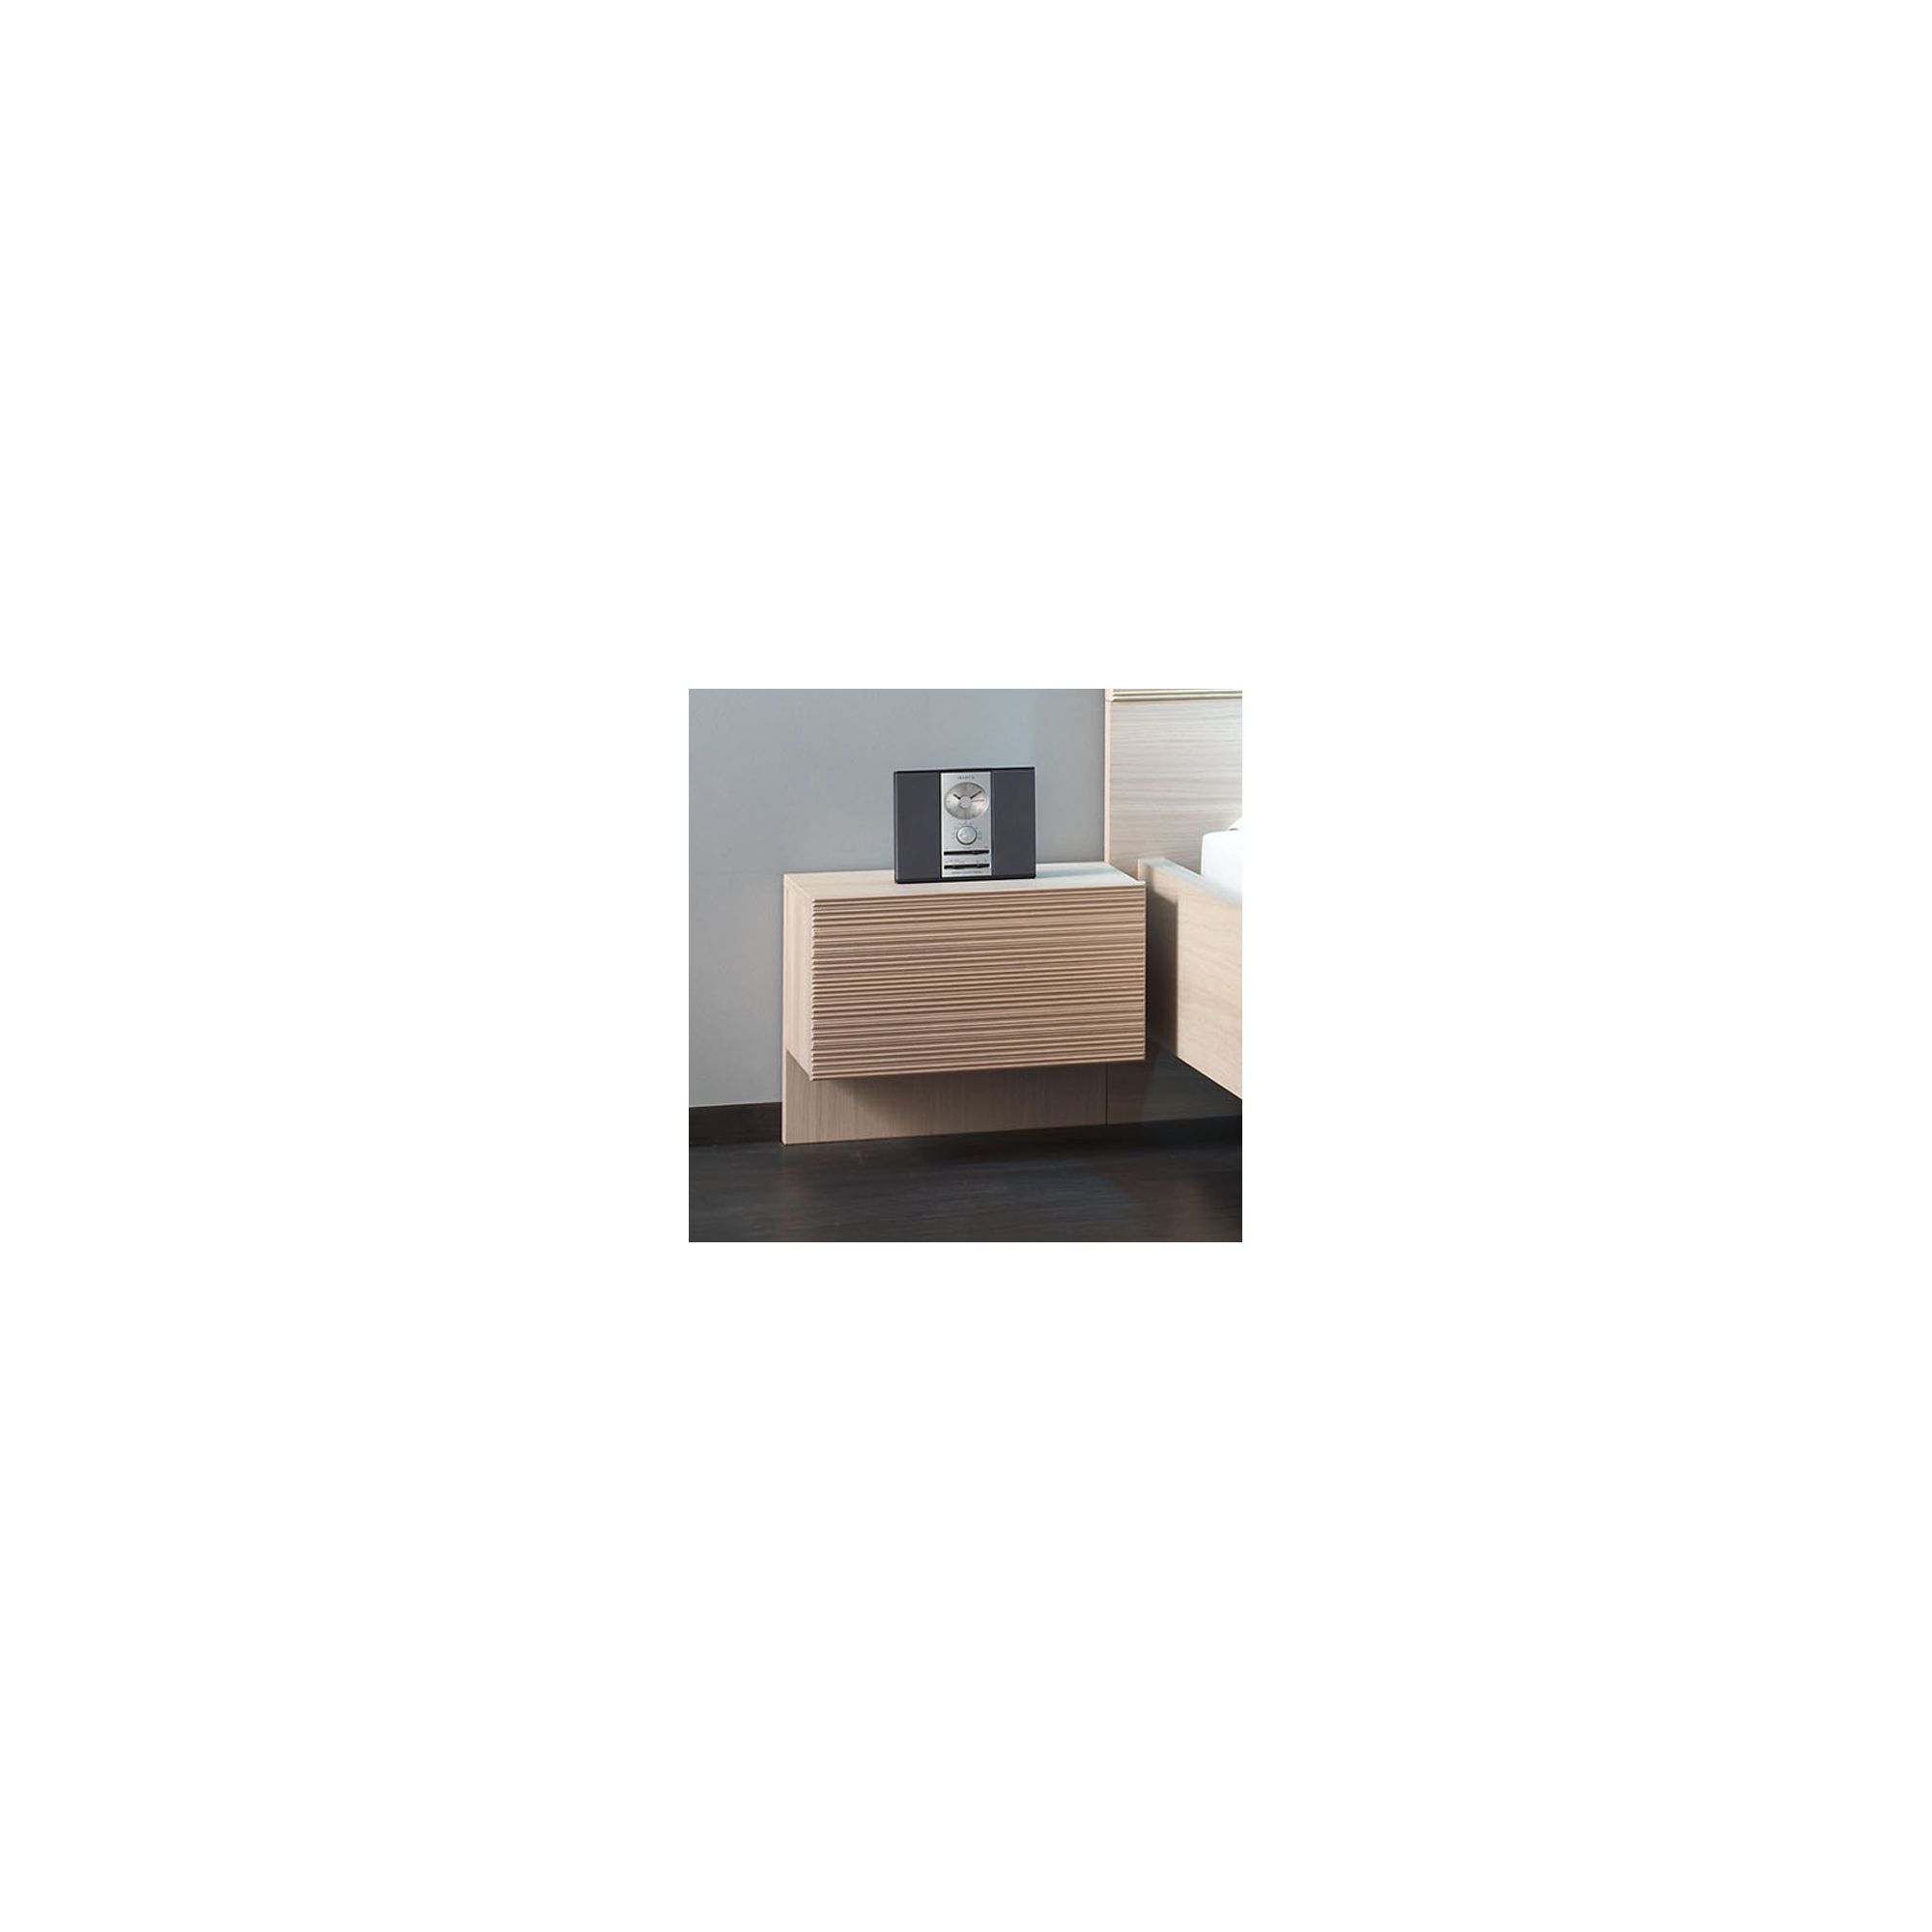 Sleepline Diva Bedside Table - White Mat Lacquered at Tescos Direct